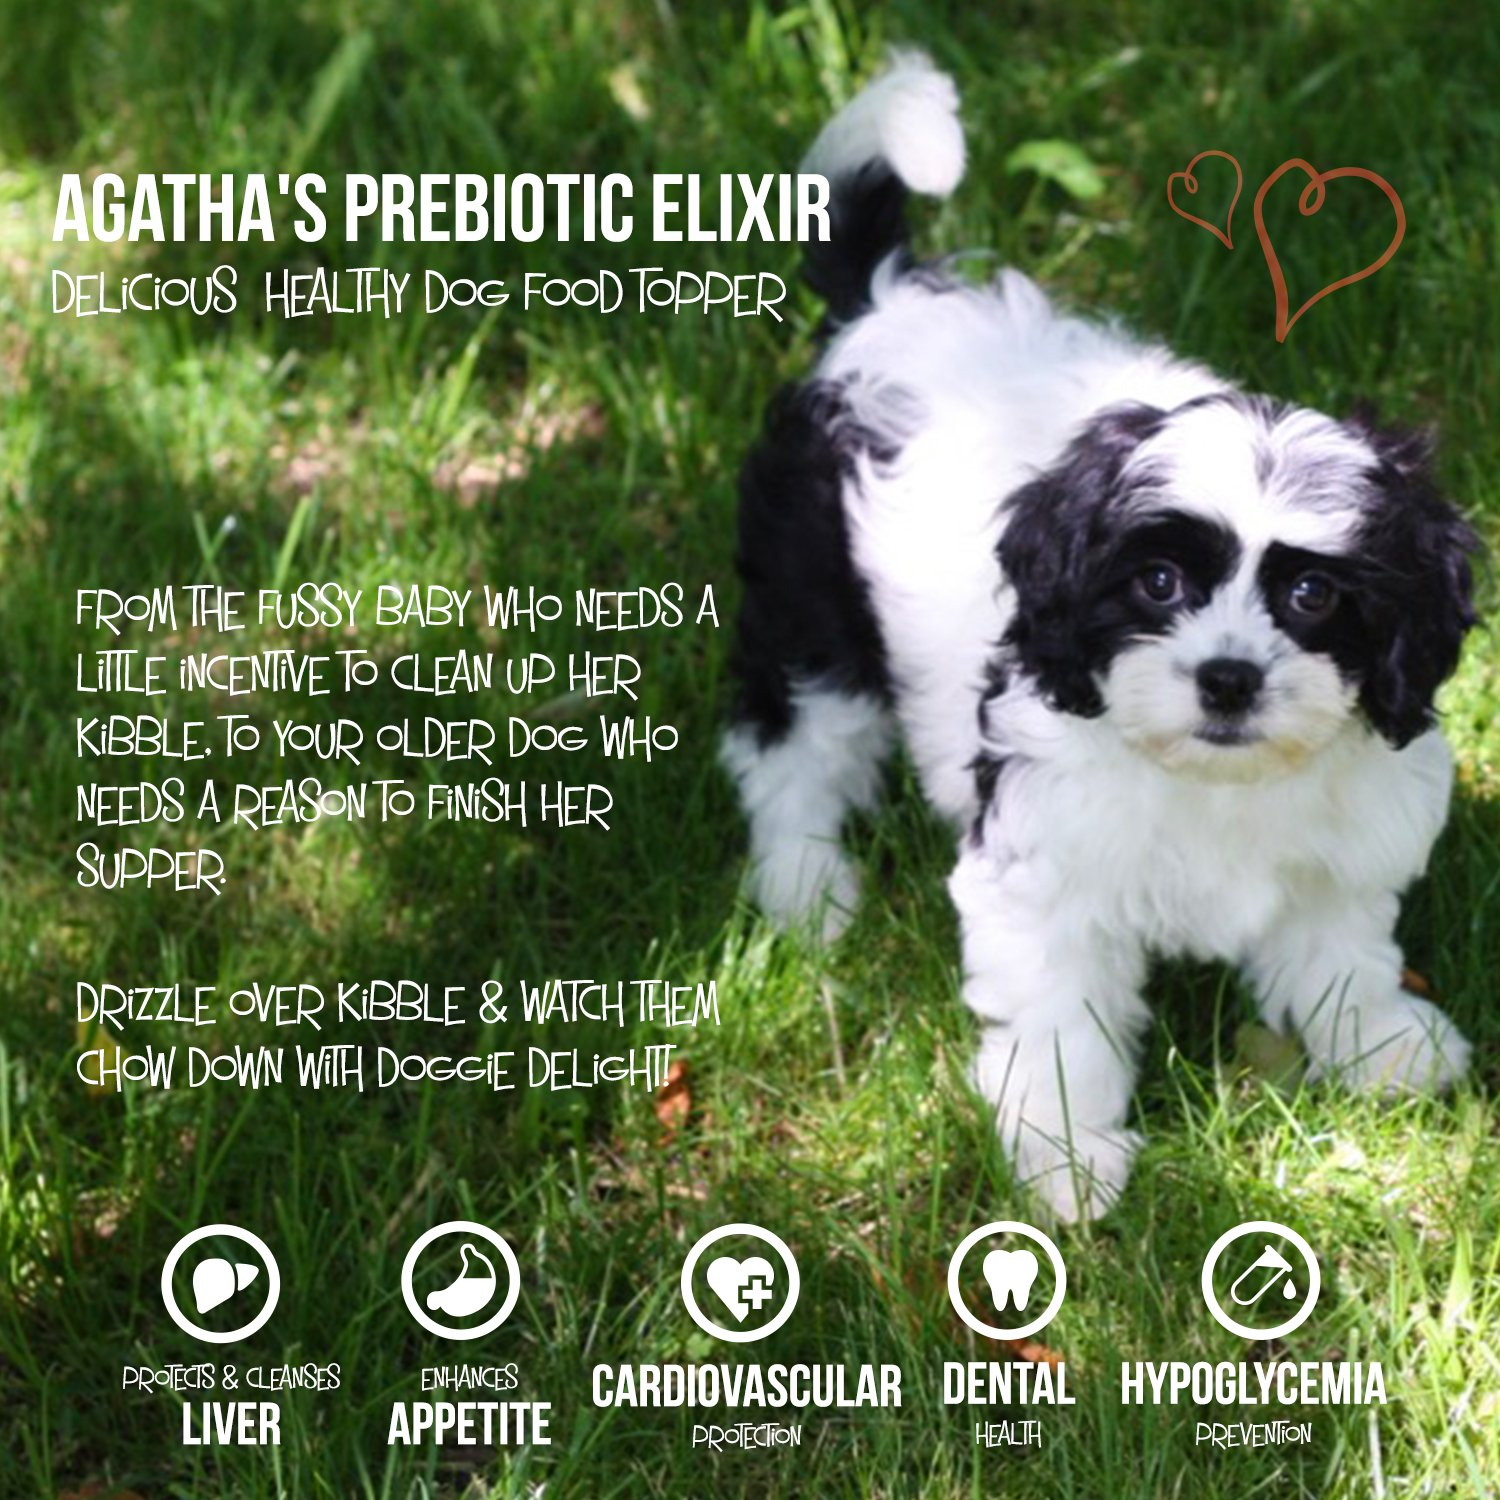 Agatha's Elixir Prebiotics for Dogs ● Appetite Stimulant for Picky Eaters and Senior Pets ● Green Tea & Milk Thistle Boost Immune System, Liver Detoxifier by Agatha's Pet Wellness (Image #4)